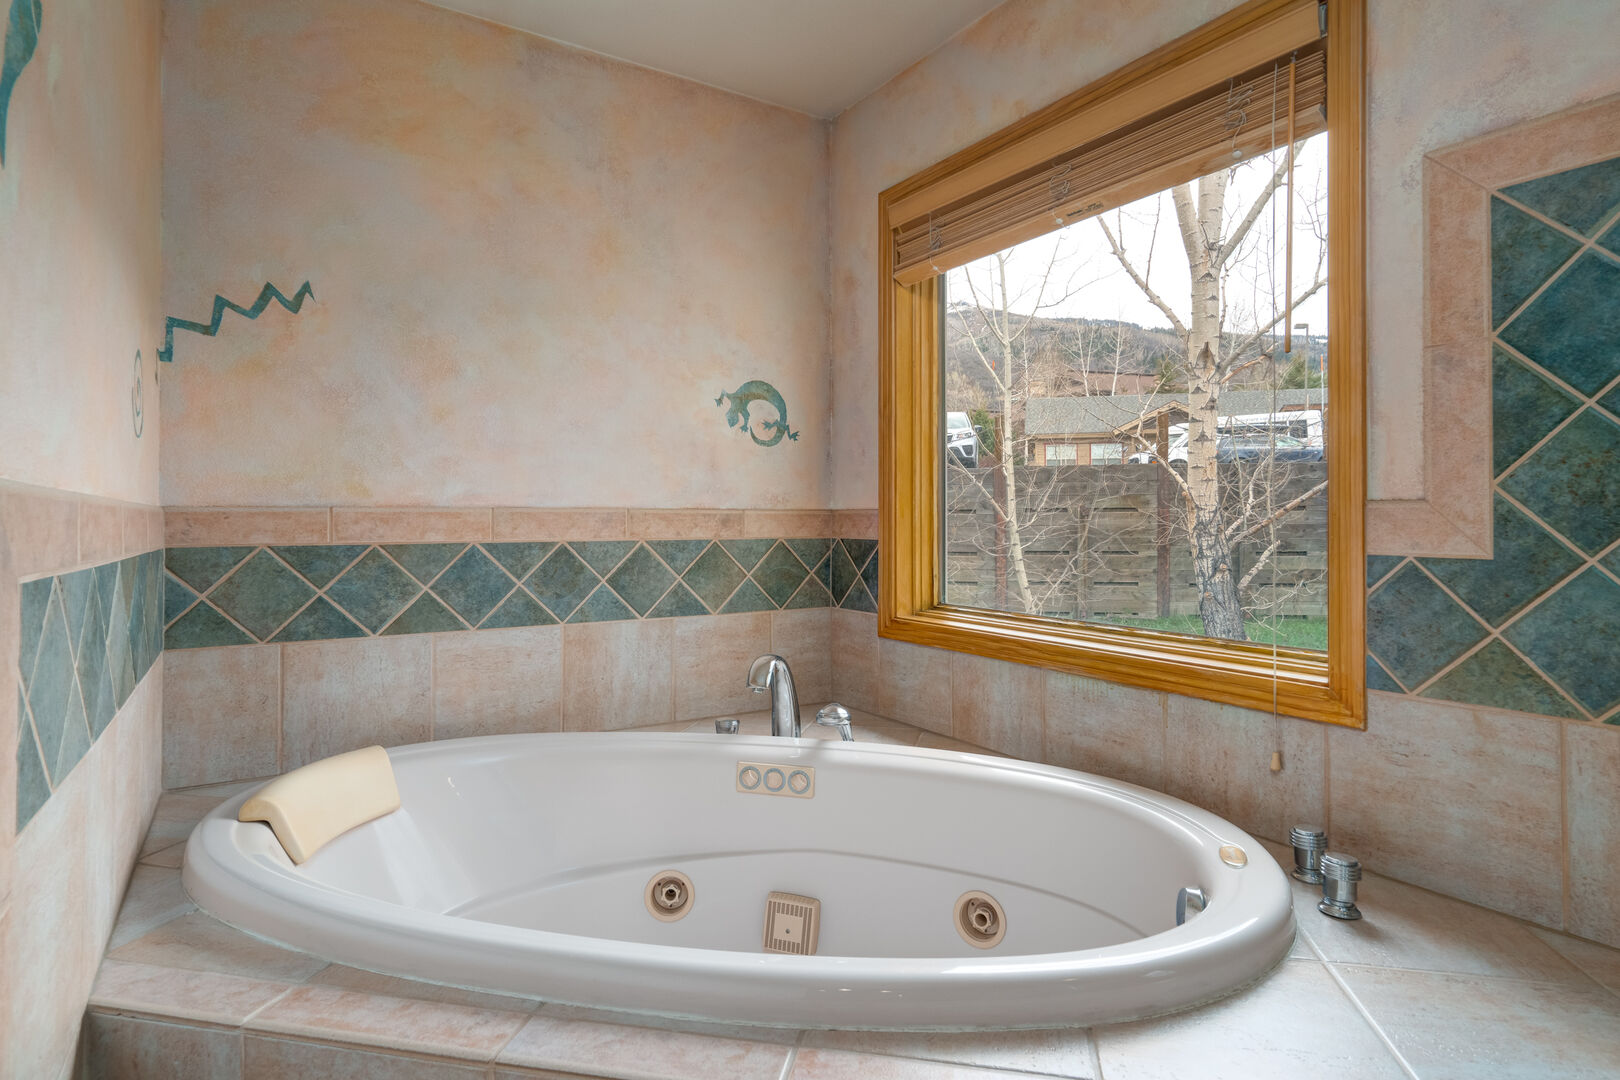 Private soaking bath tub in the master bathroom to relax in at the end of an active day!